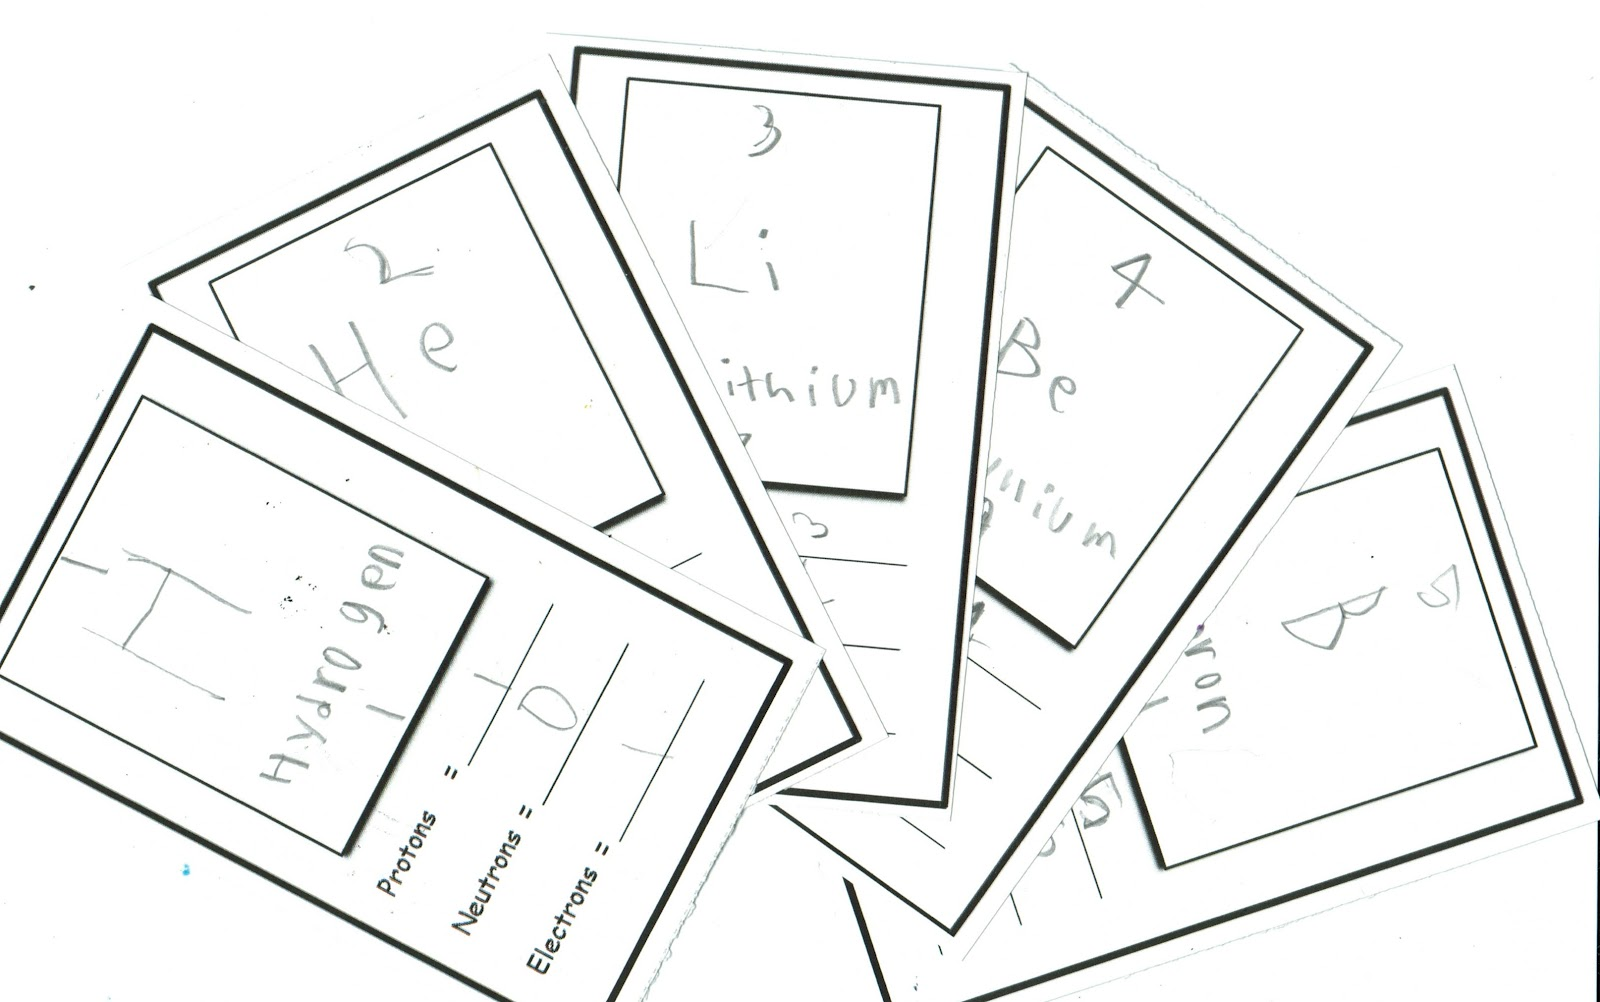 orphan trains elements and building big half a hundred acre wood - Periodic Table Of Elements Flash Cards Printable